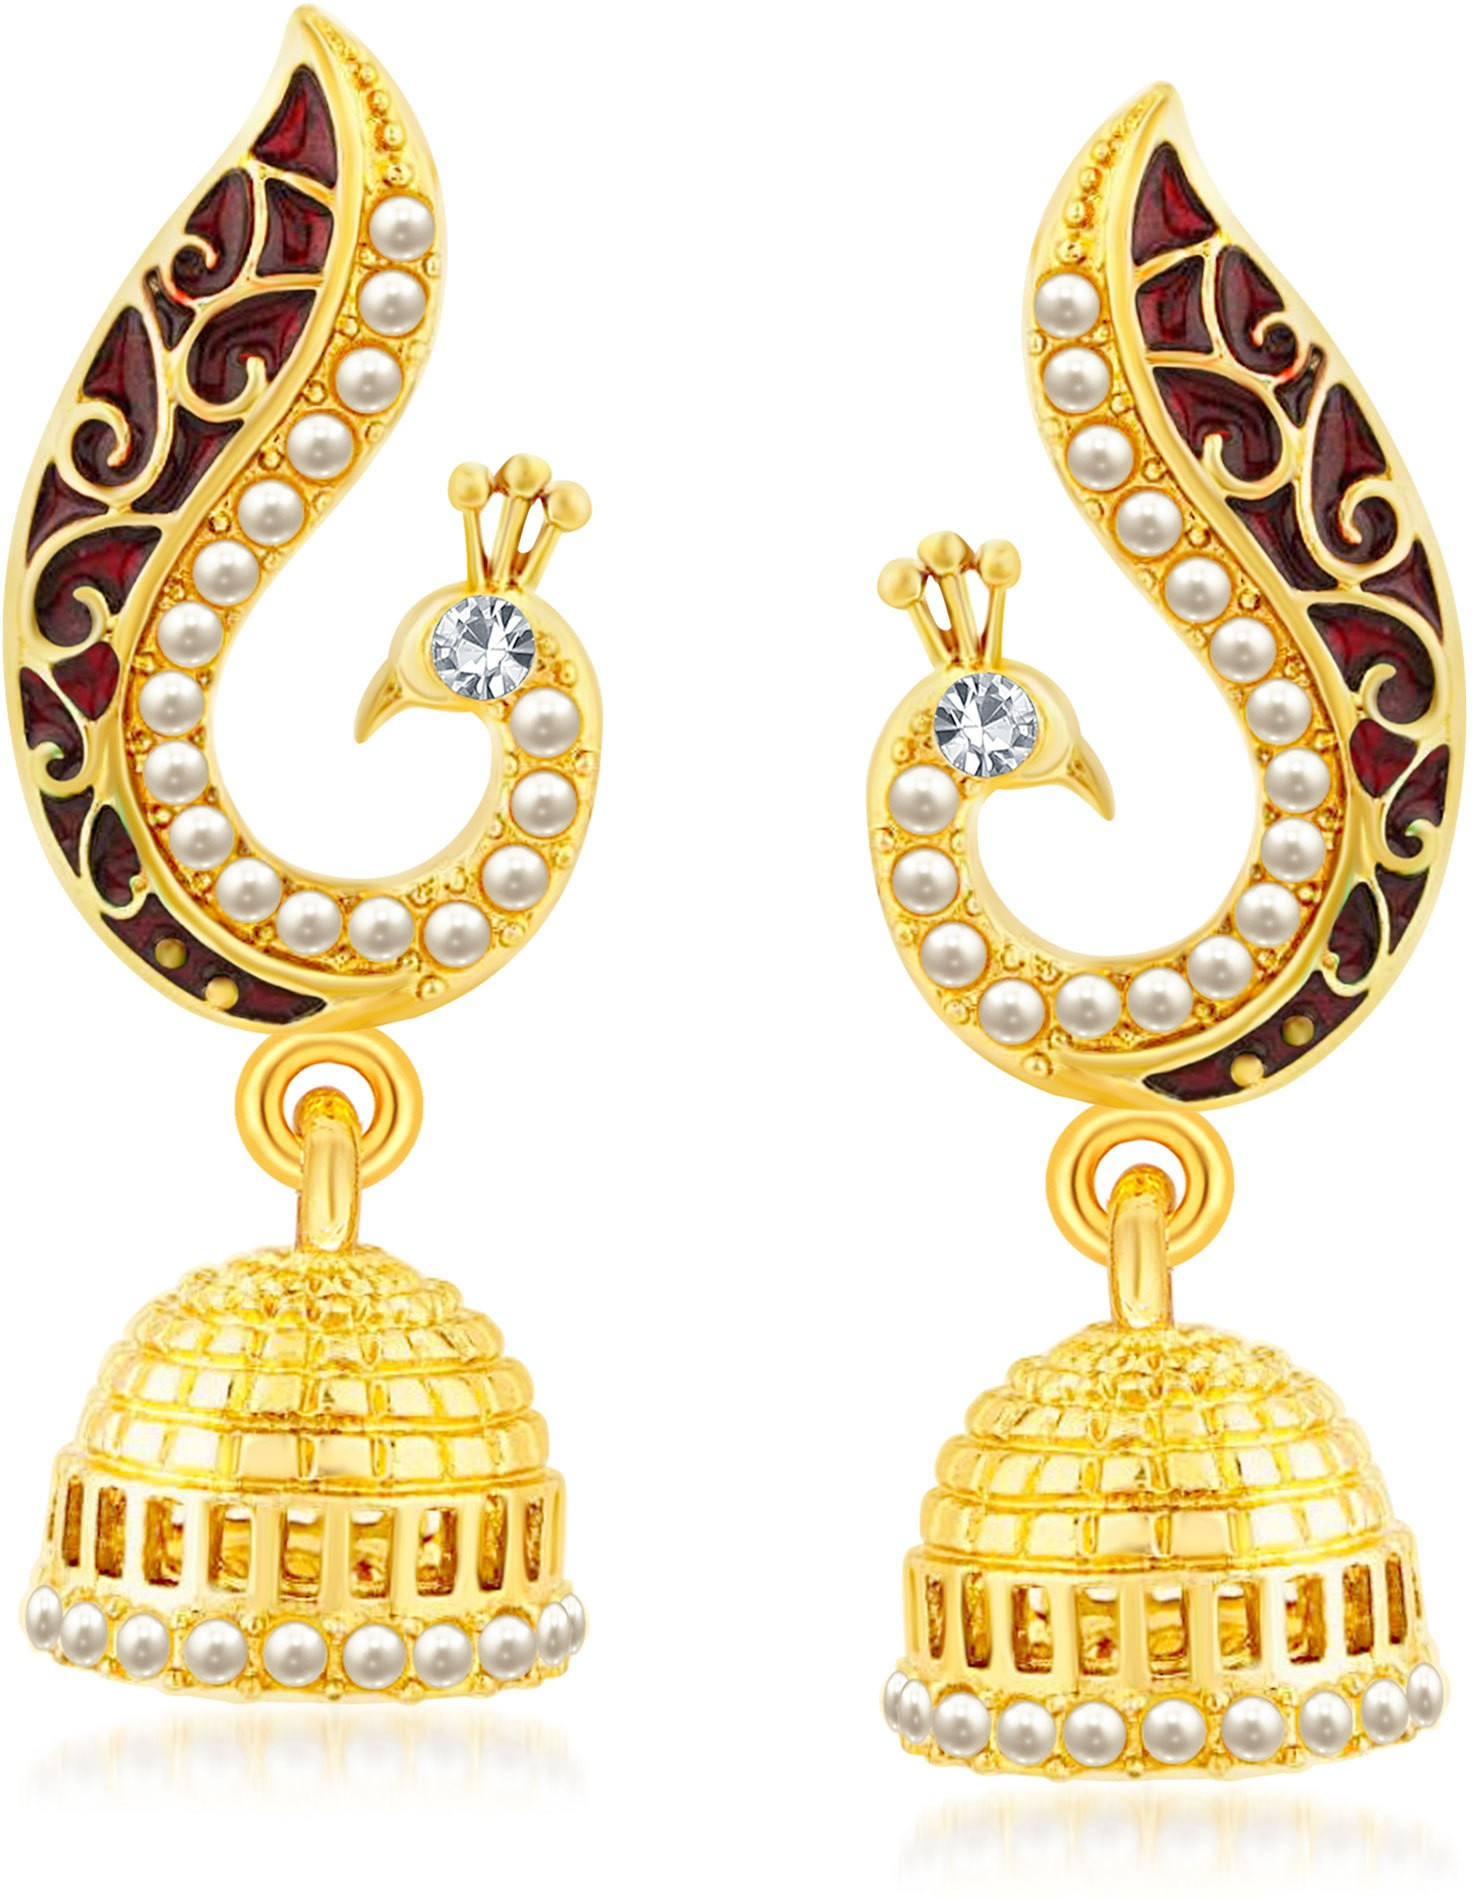 Flipkart - Earrings, Pendants, Rings... Fashion Jewellery